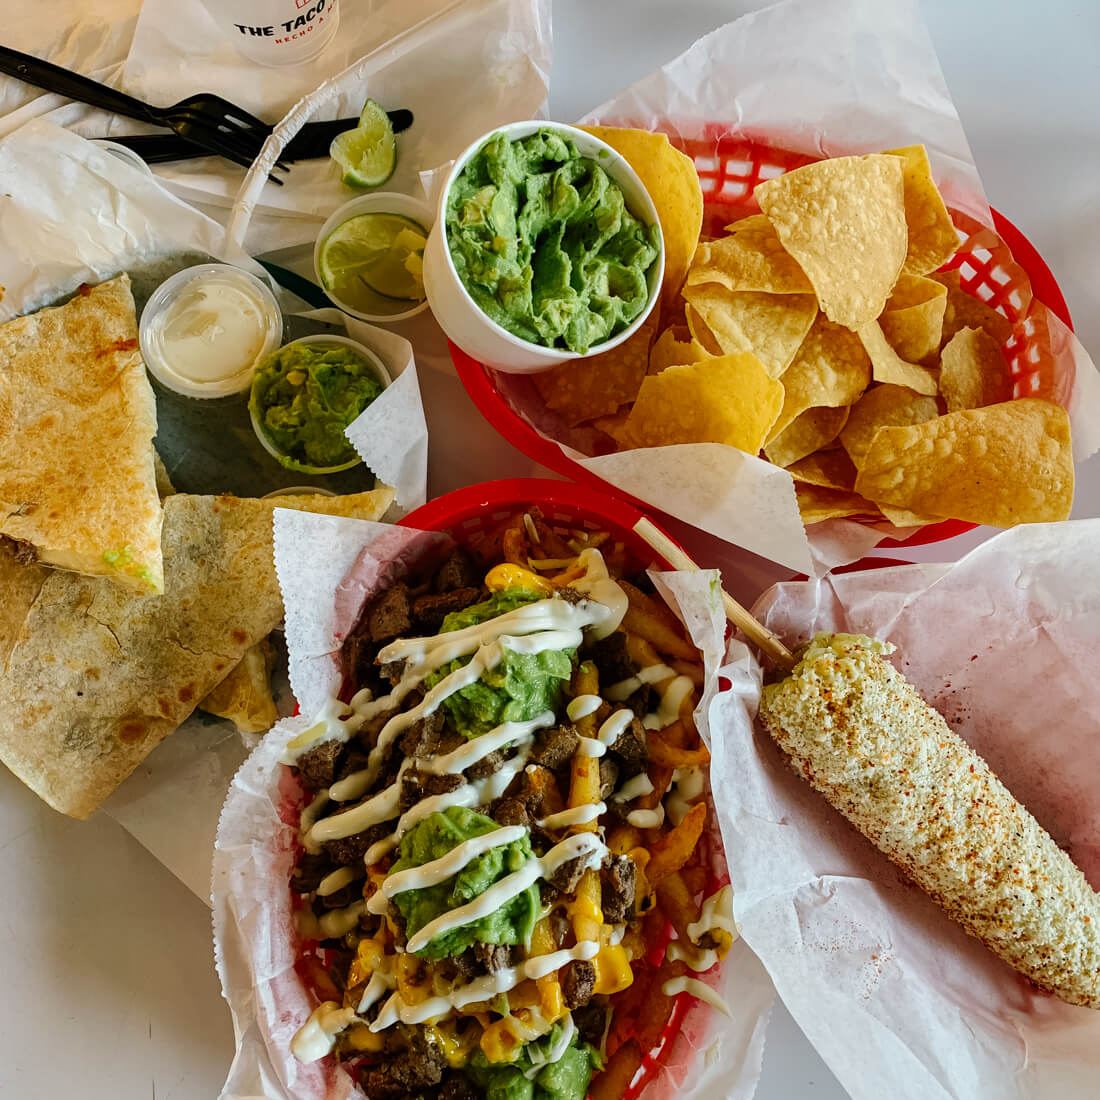 Best San Diego Restaurants - the Taco Stand, awesome Mexican food